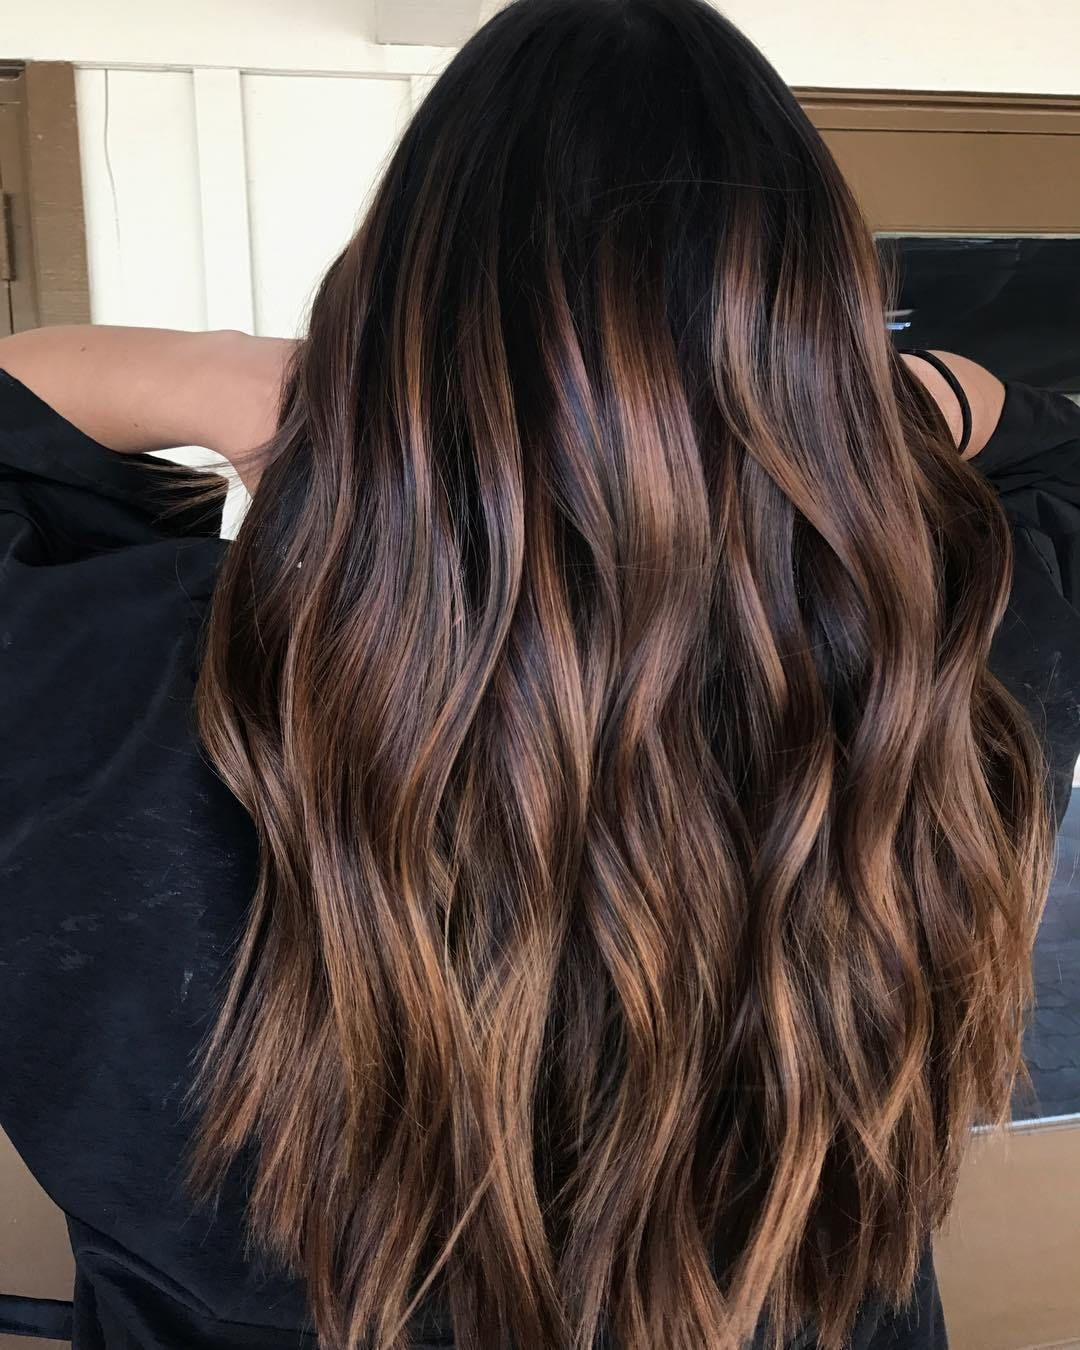 60 Hairstyles Featuring Dark Brown Hair With Highlights In 2020